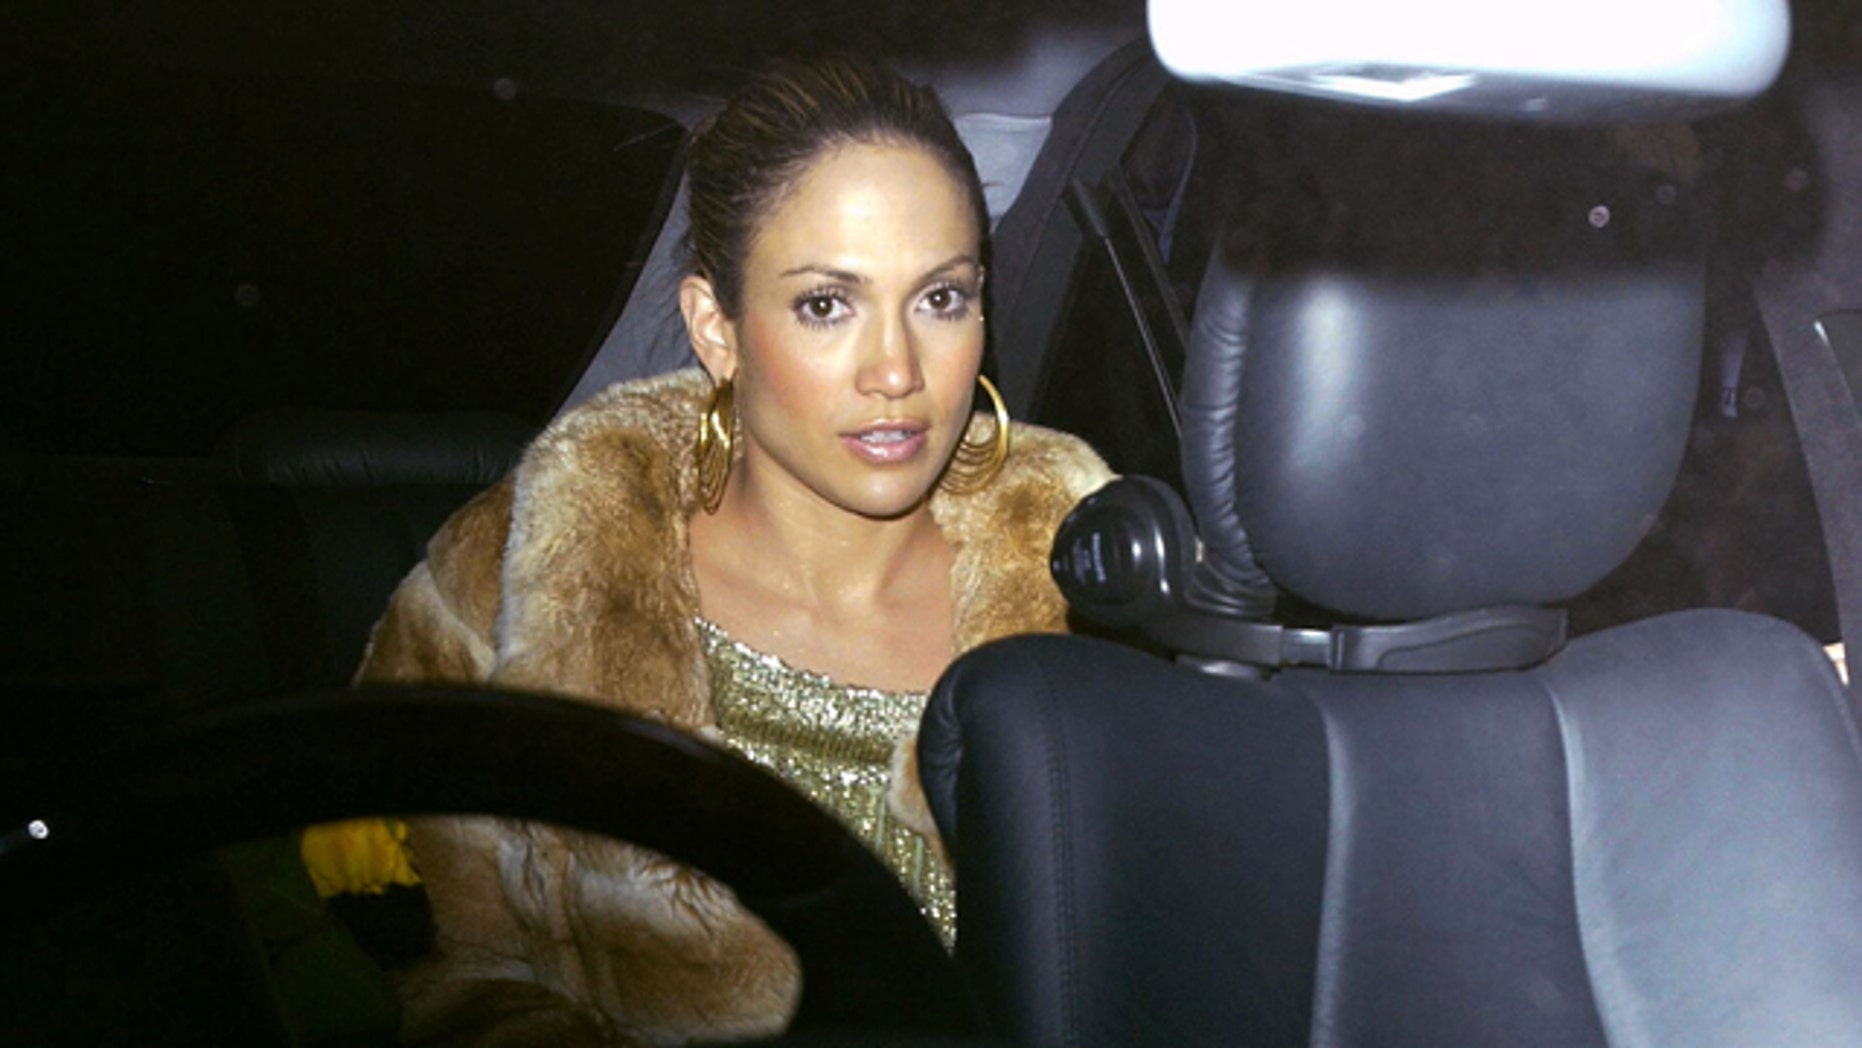 LONDON - FEBRUARY 26:  Actress Jennifer Lopez sits in a car after leaving Mezzo restaurant February 26, 2003 in London, England.  (Photo by Bruno Vincent/Getty Images)